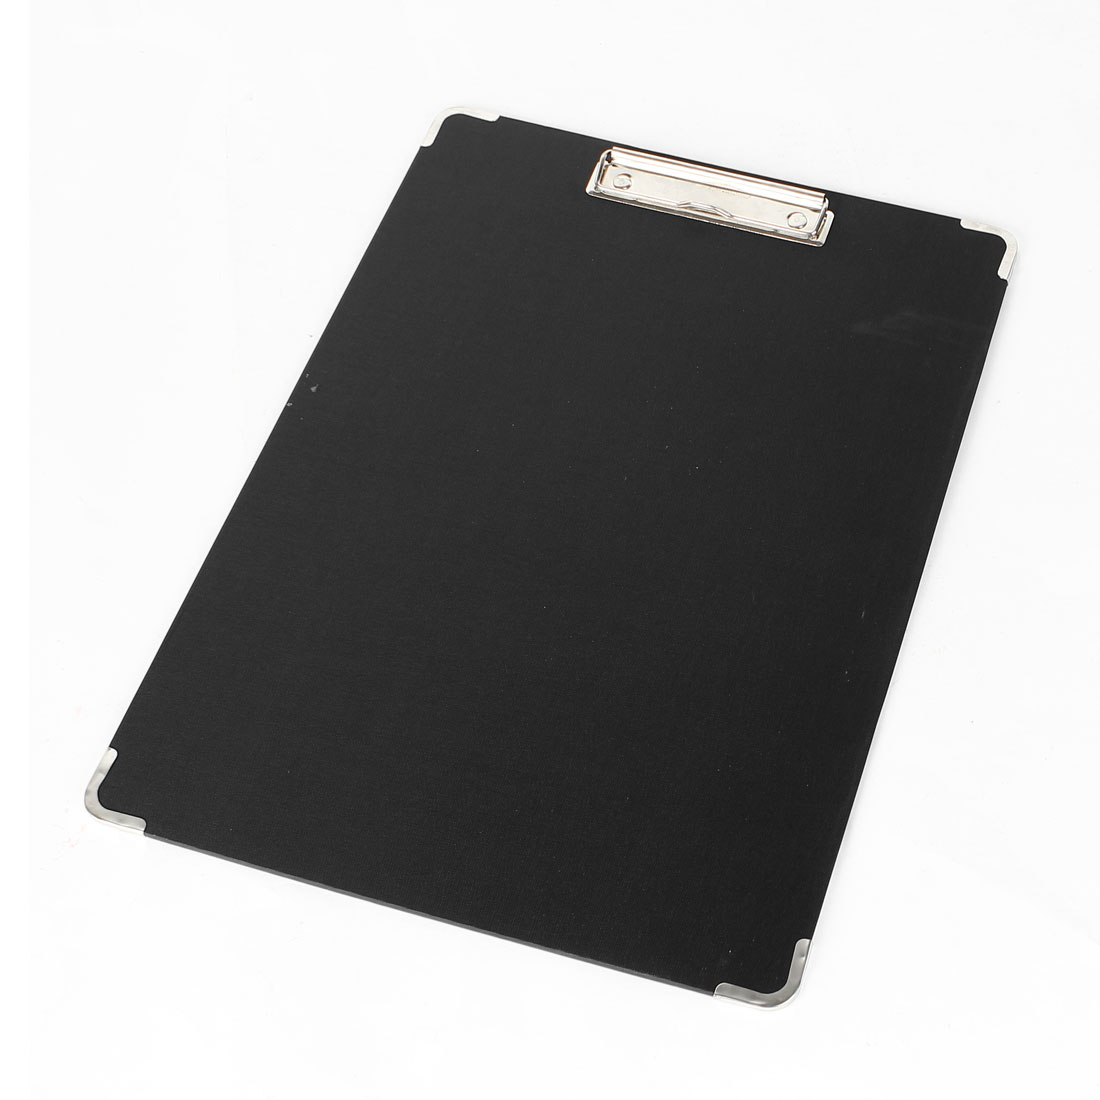 Black Nylon Wrapped Wooden Sketch Clipboard Holder 40x30cm for Painting